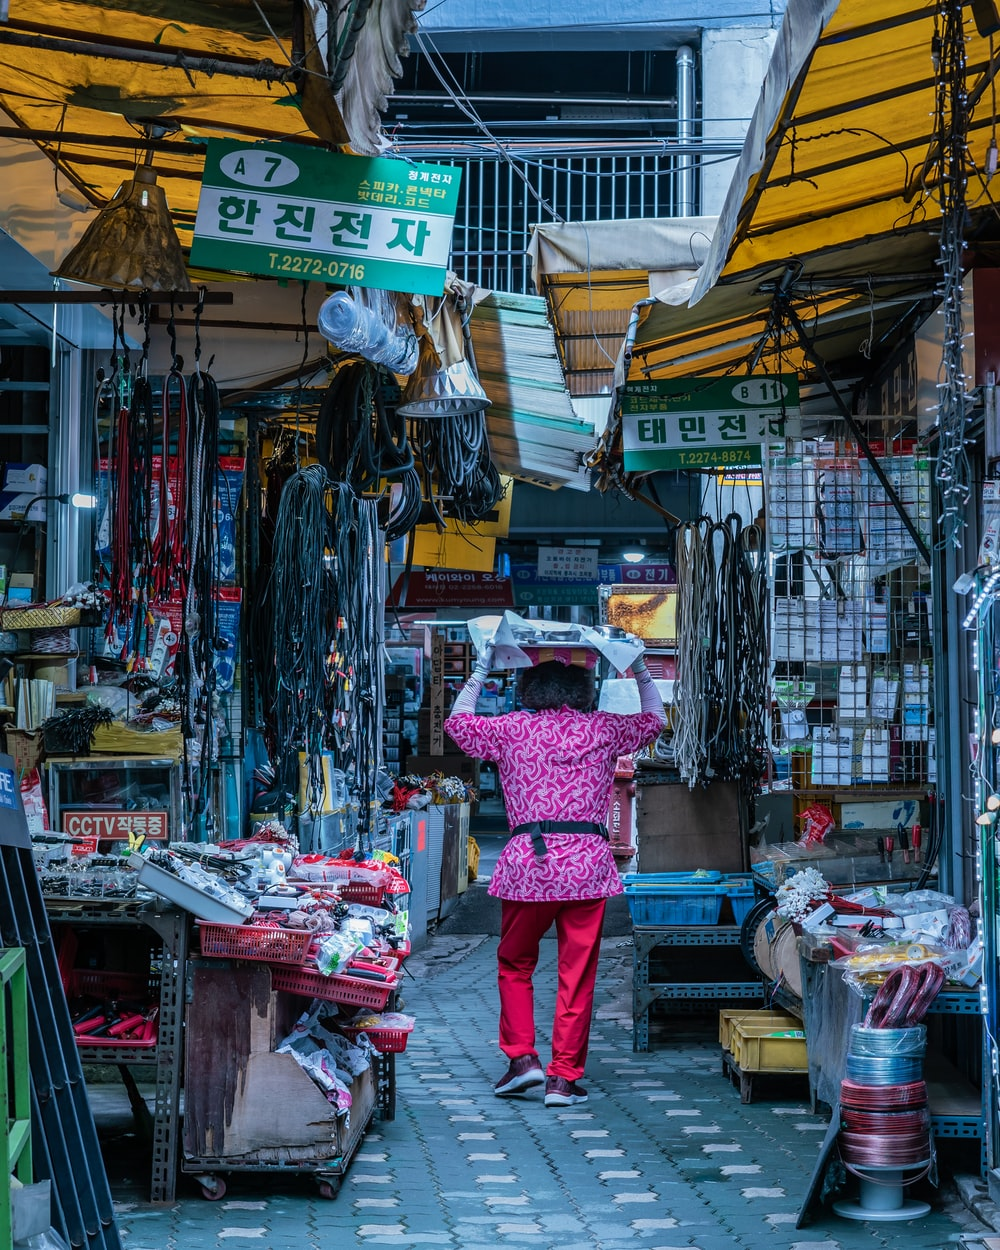 person in pink top walking beside stores